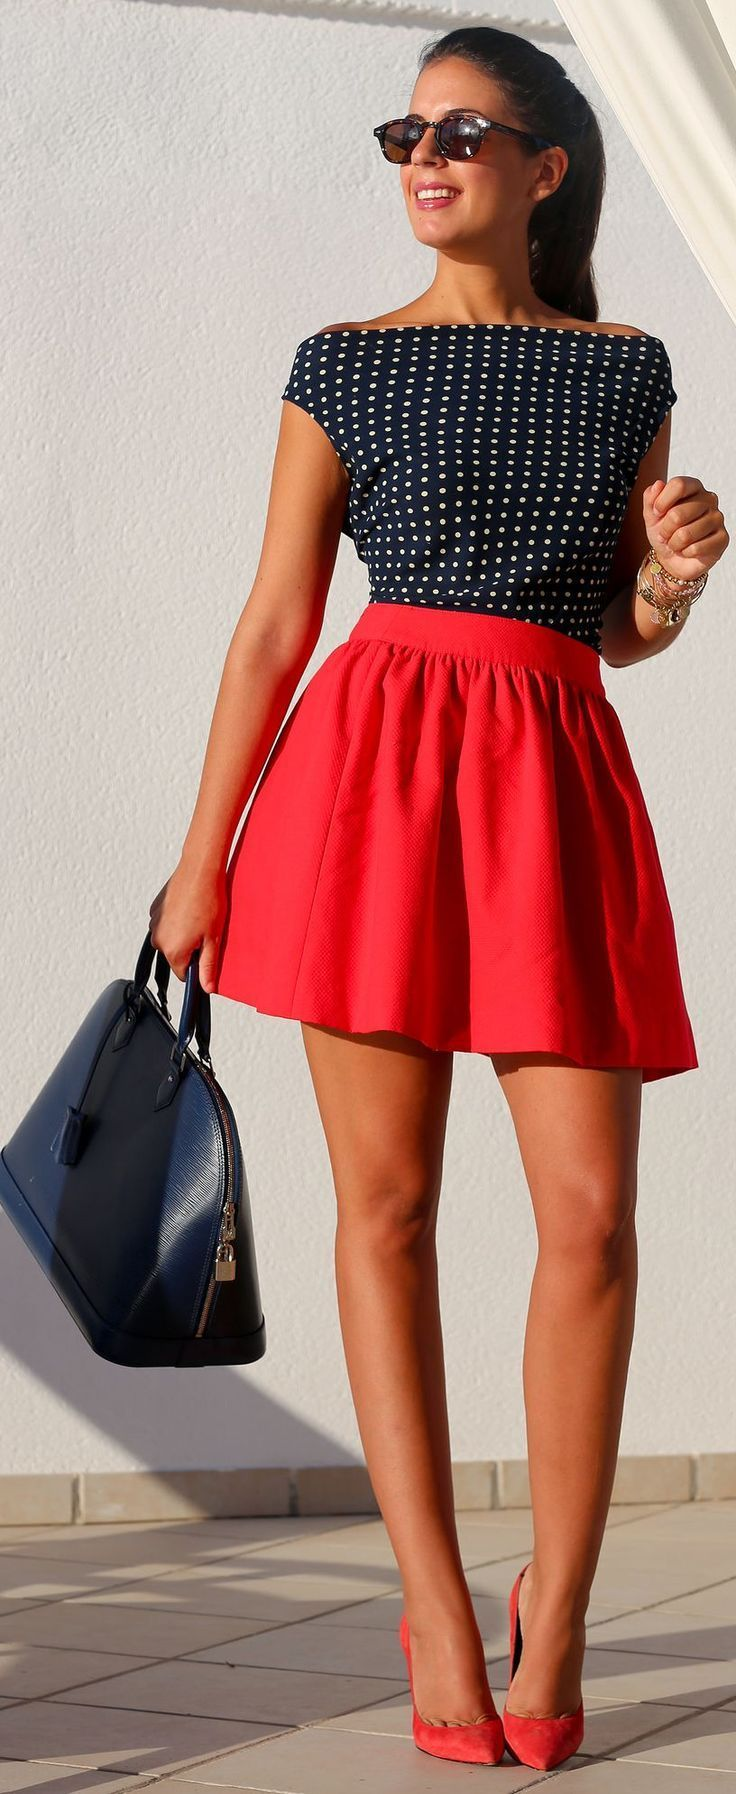 with a tea length skirt id wesr it to work